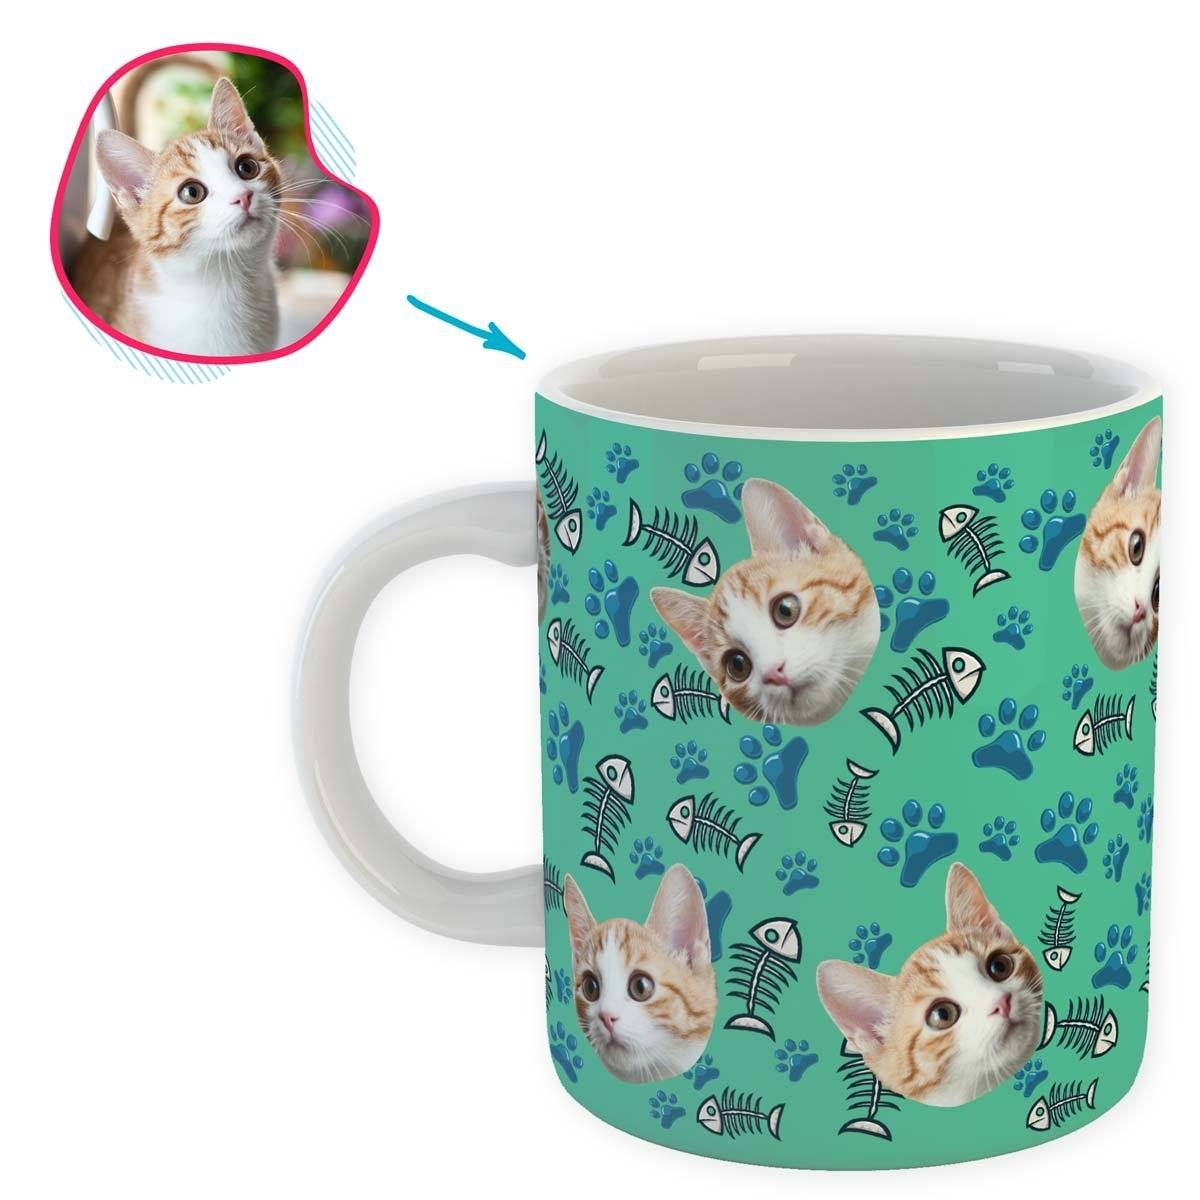 mint Cat mug personalized with photo of face printed on it